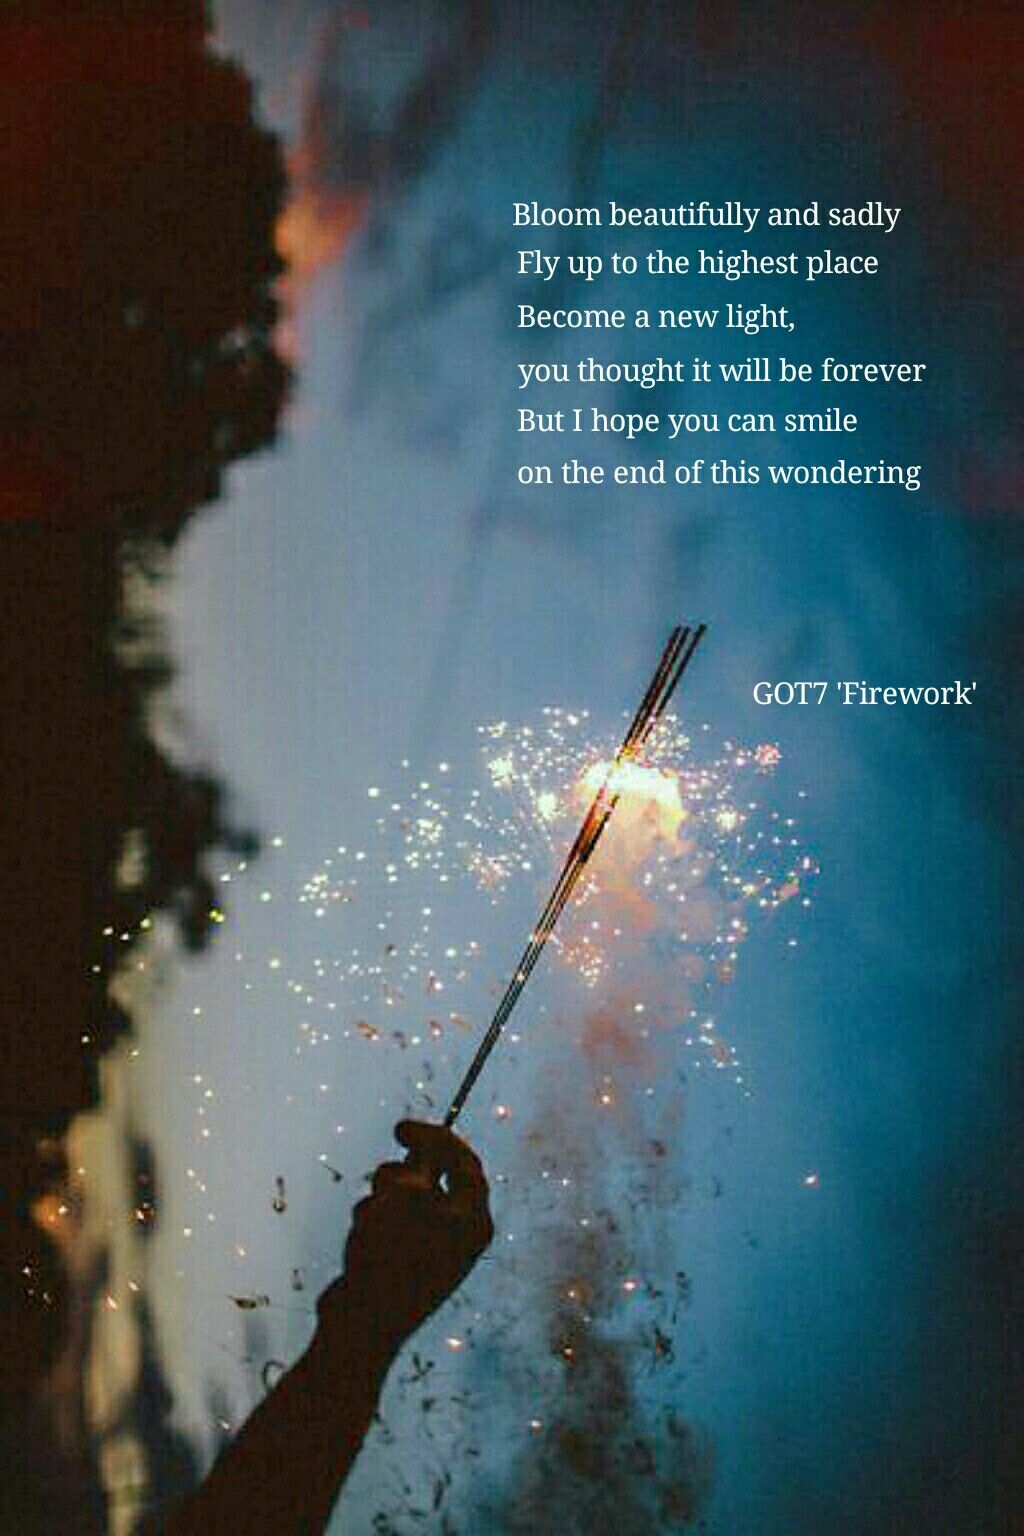 Cause you're like a firework GOT7 Firework Happy new